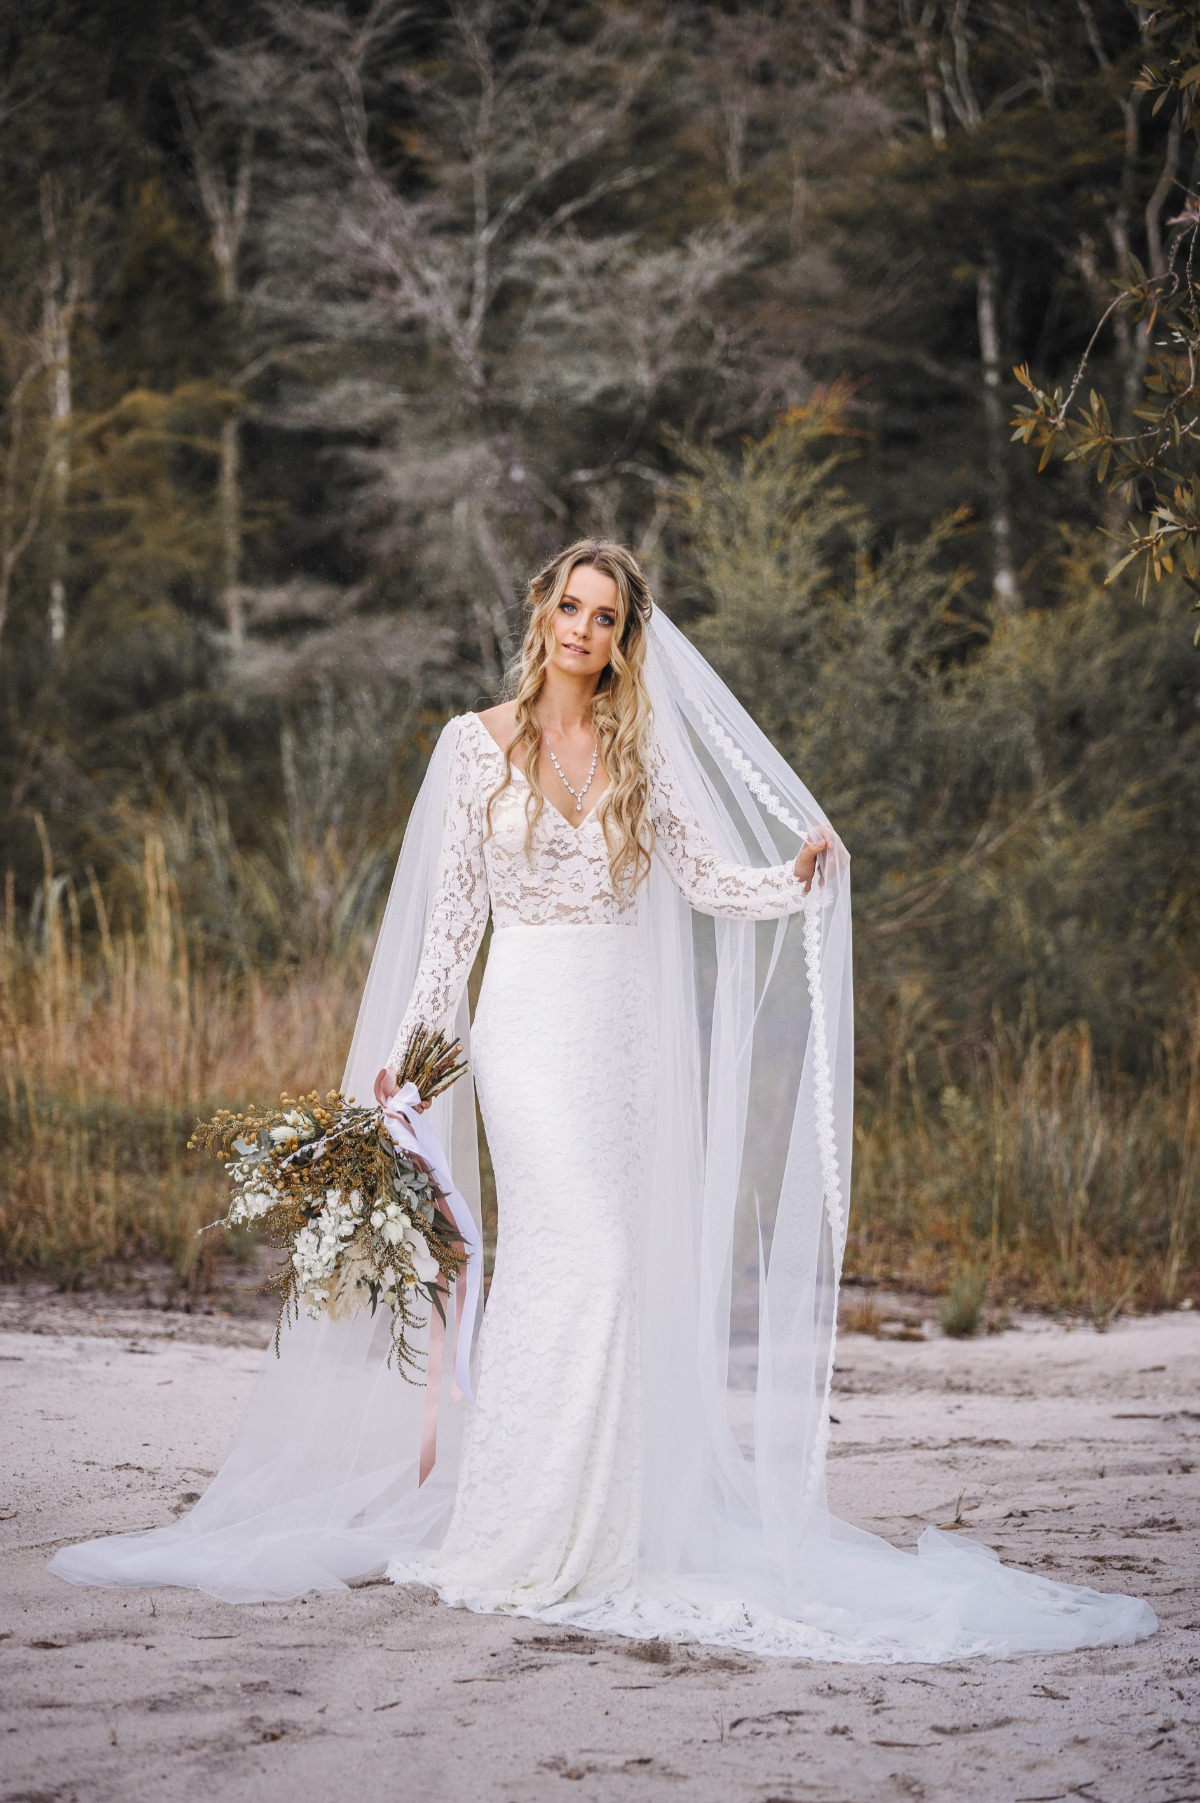 Alysia gown from Goddess by Nature